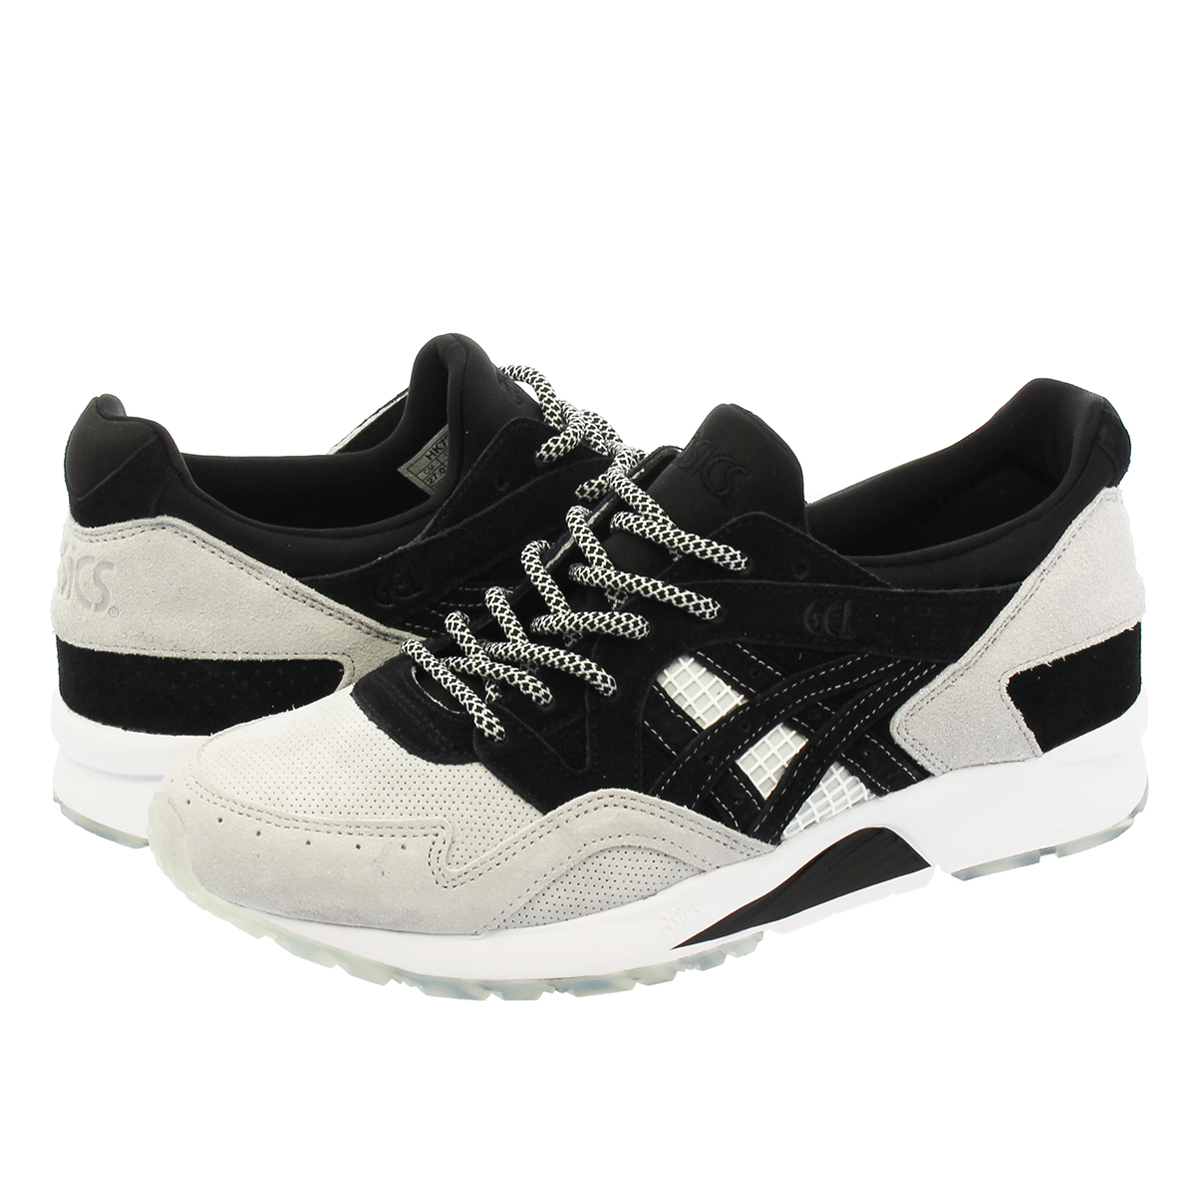 ASICS Tiger x HIGHS AND LOWS x MONKEY TIME 【ICHIMATSU】 アシックス ゲルライト 5 GEL-LYTE V GREY/BLACK